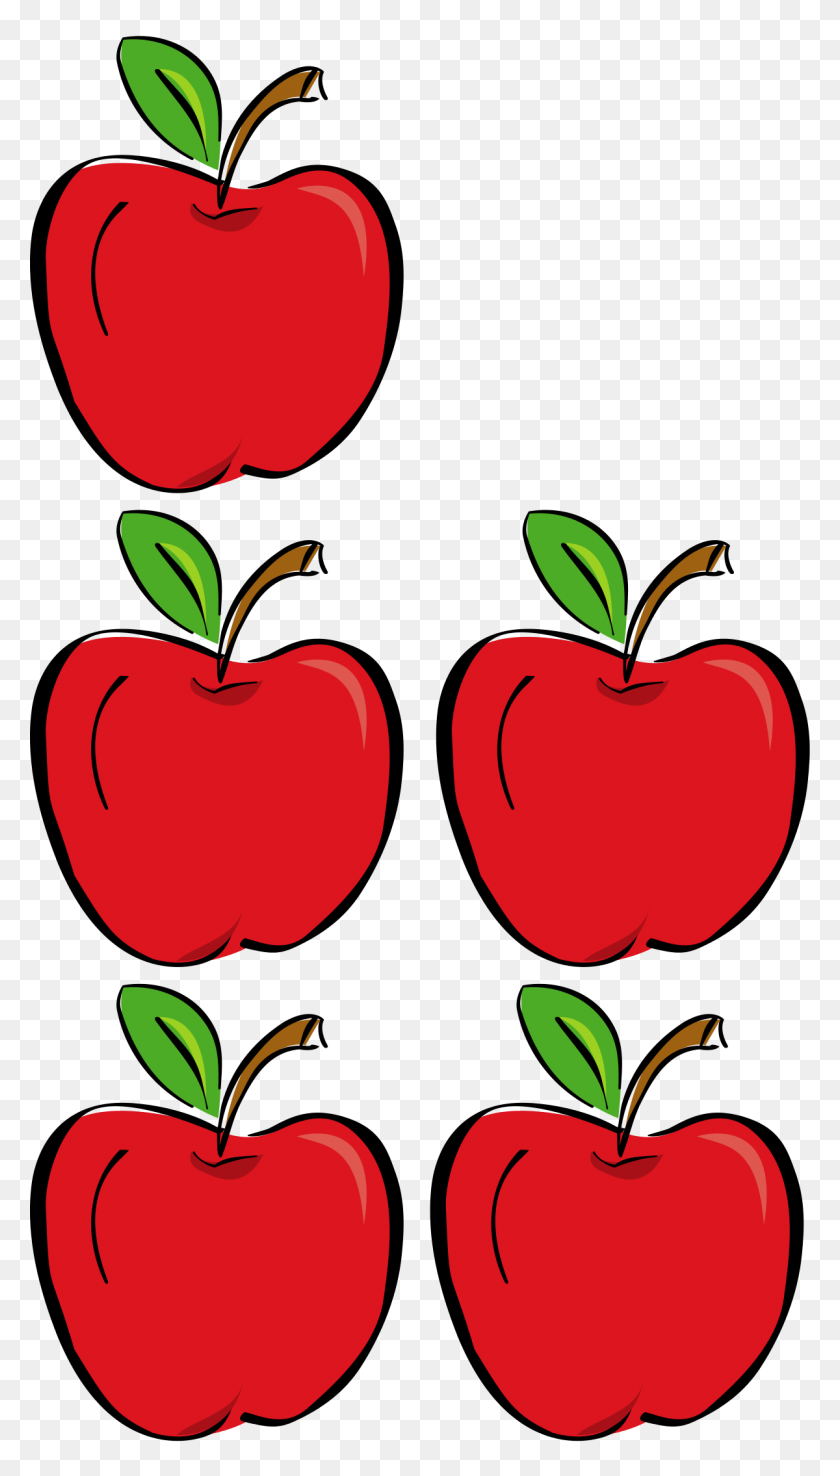 Addition - Thing 1 And Thing 2 PNG